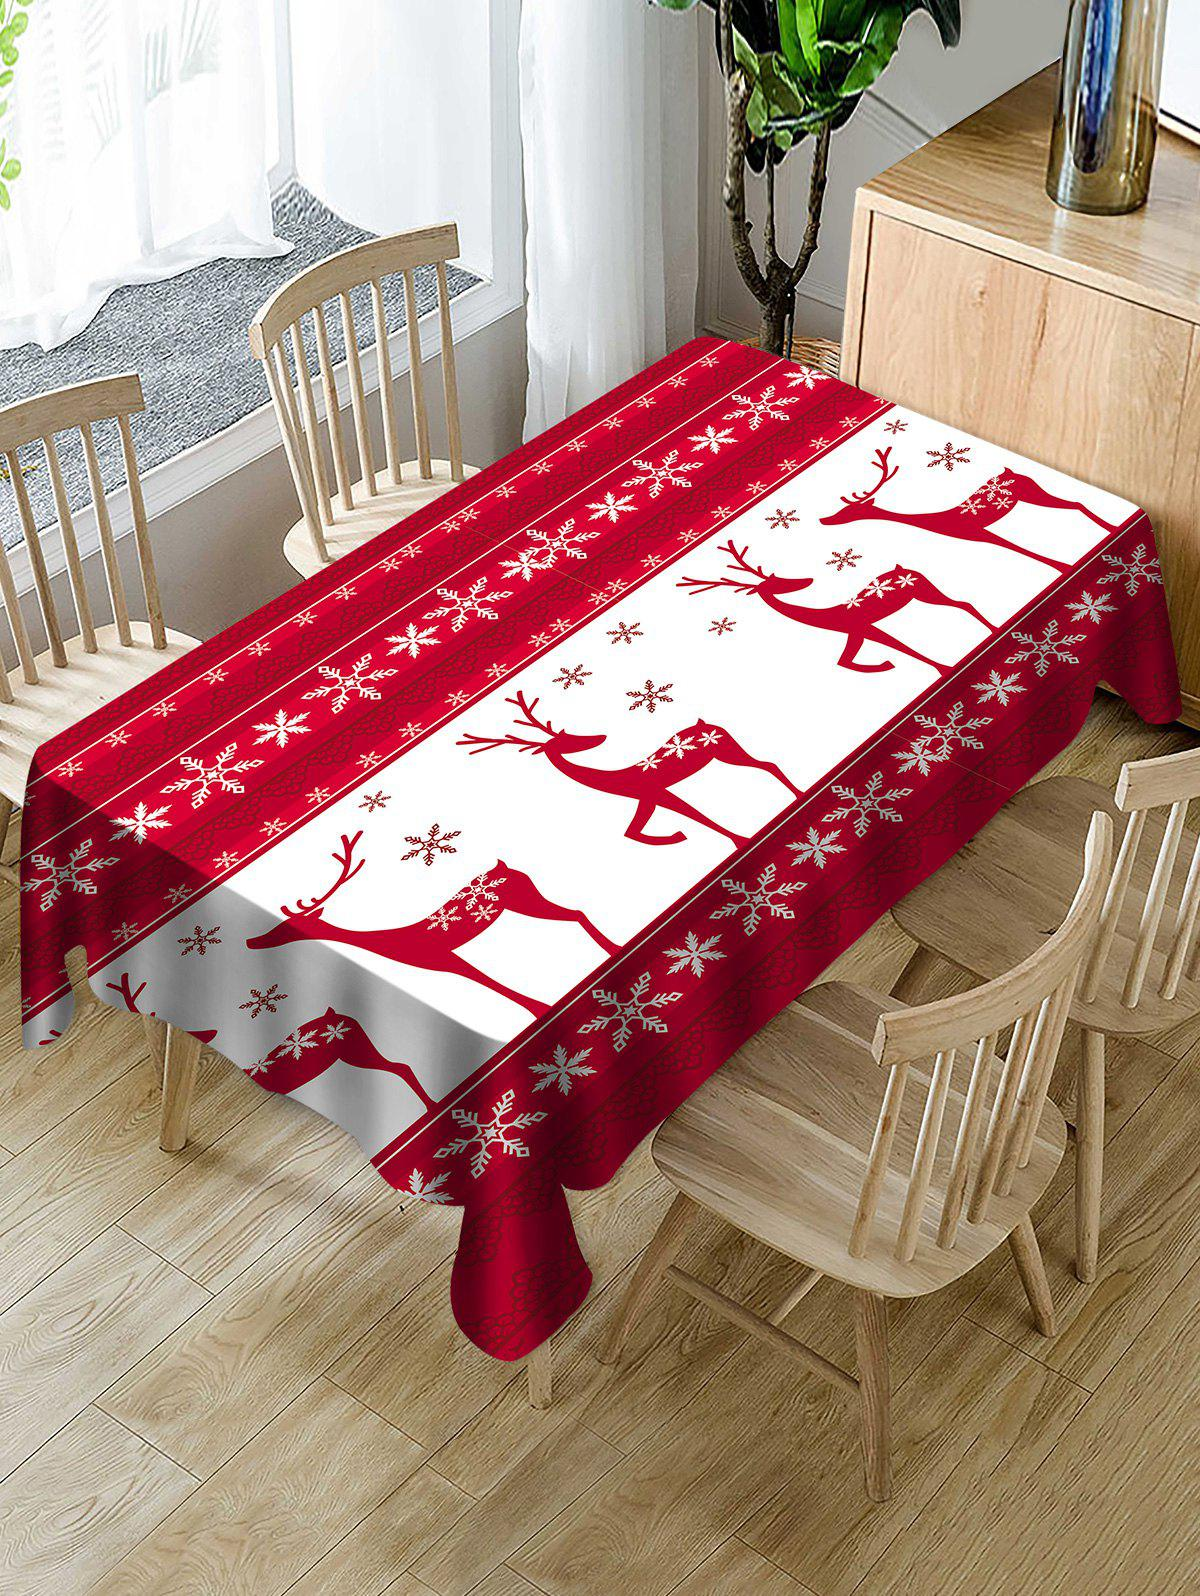 Latest Christmas Elk Snowflake Print Fabric Waterproof Tablecloth